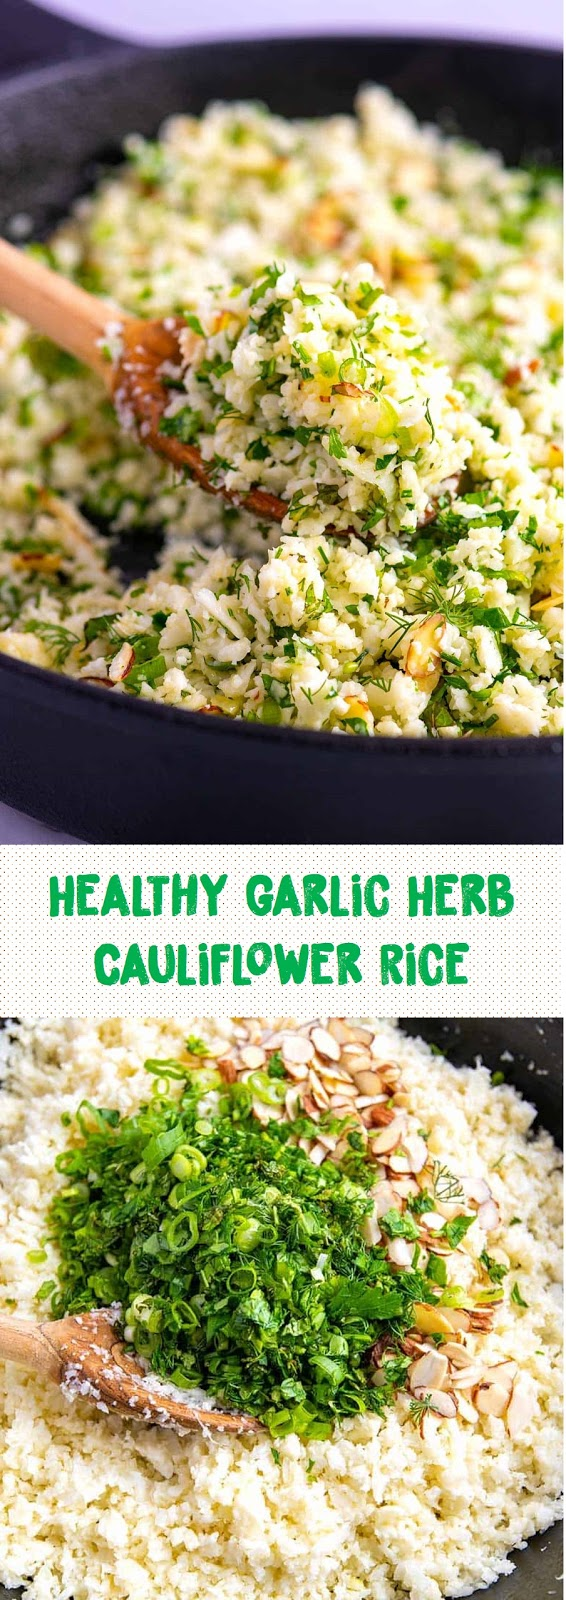 Healthy Garlic Herb Cauliflower Rice